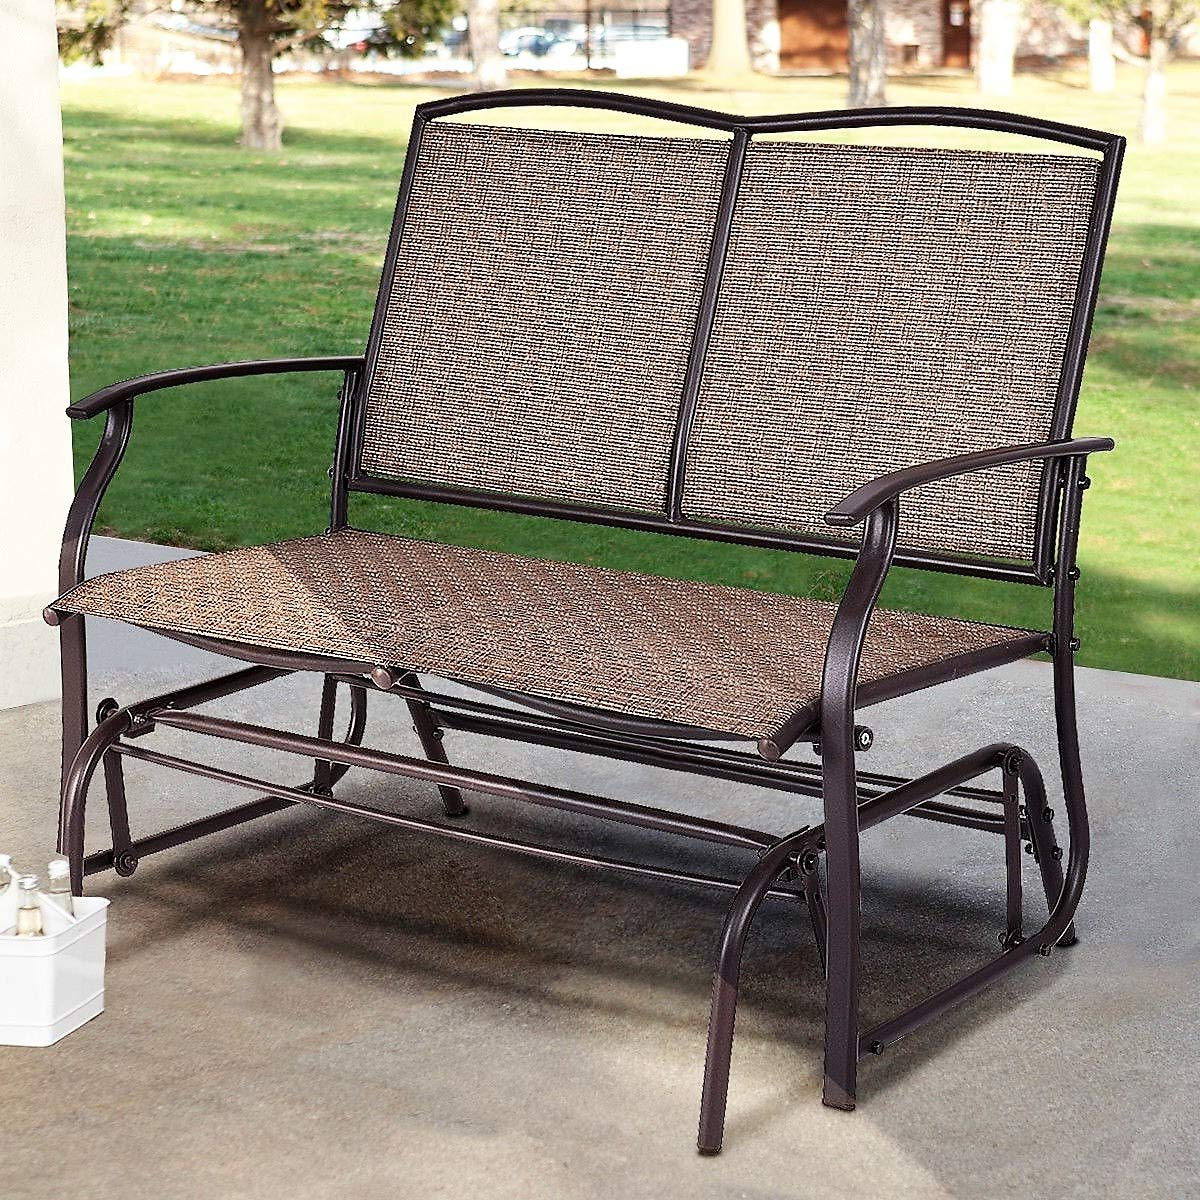 Amazon : Lucky Gift – Patio Glider Rocking 2 Person Inside Most Current 2 Person Loveseat Chair Patio Porch Swings With Rocker (View 7 of 30)